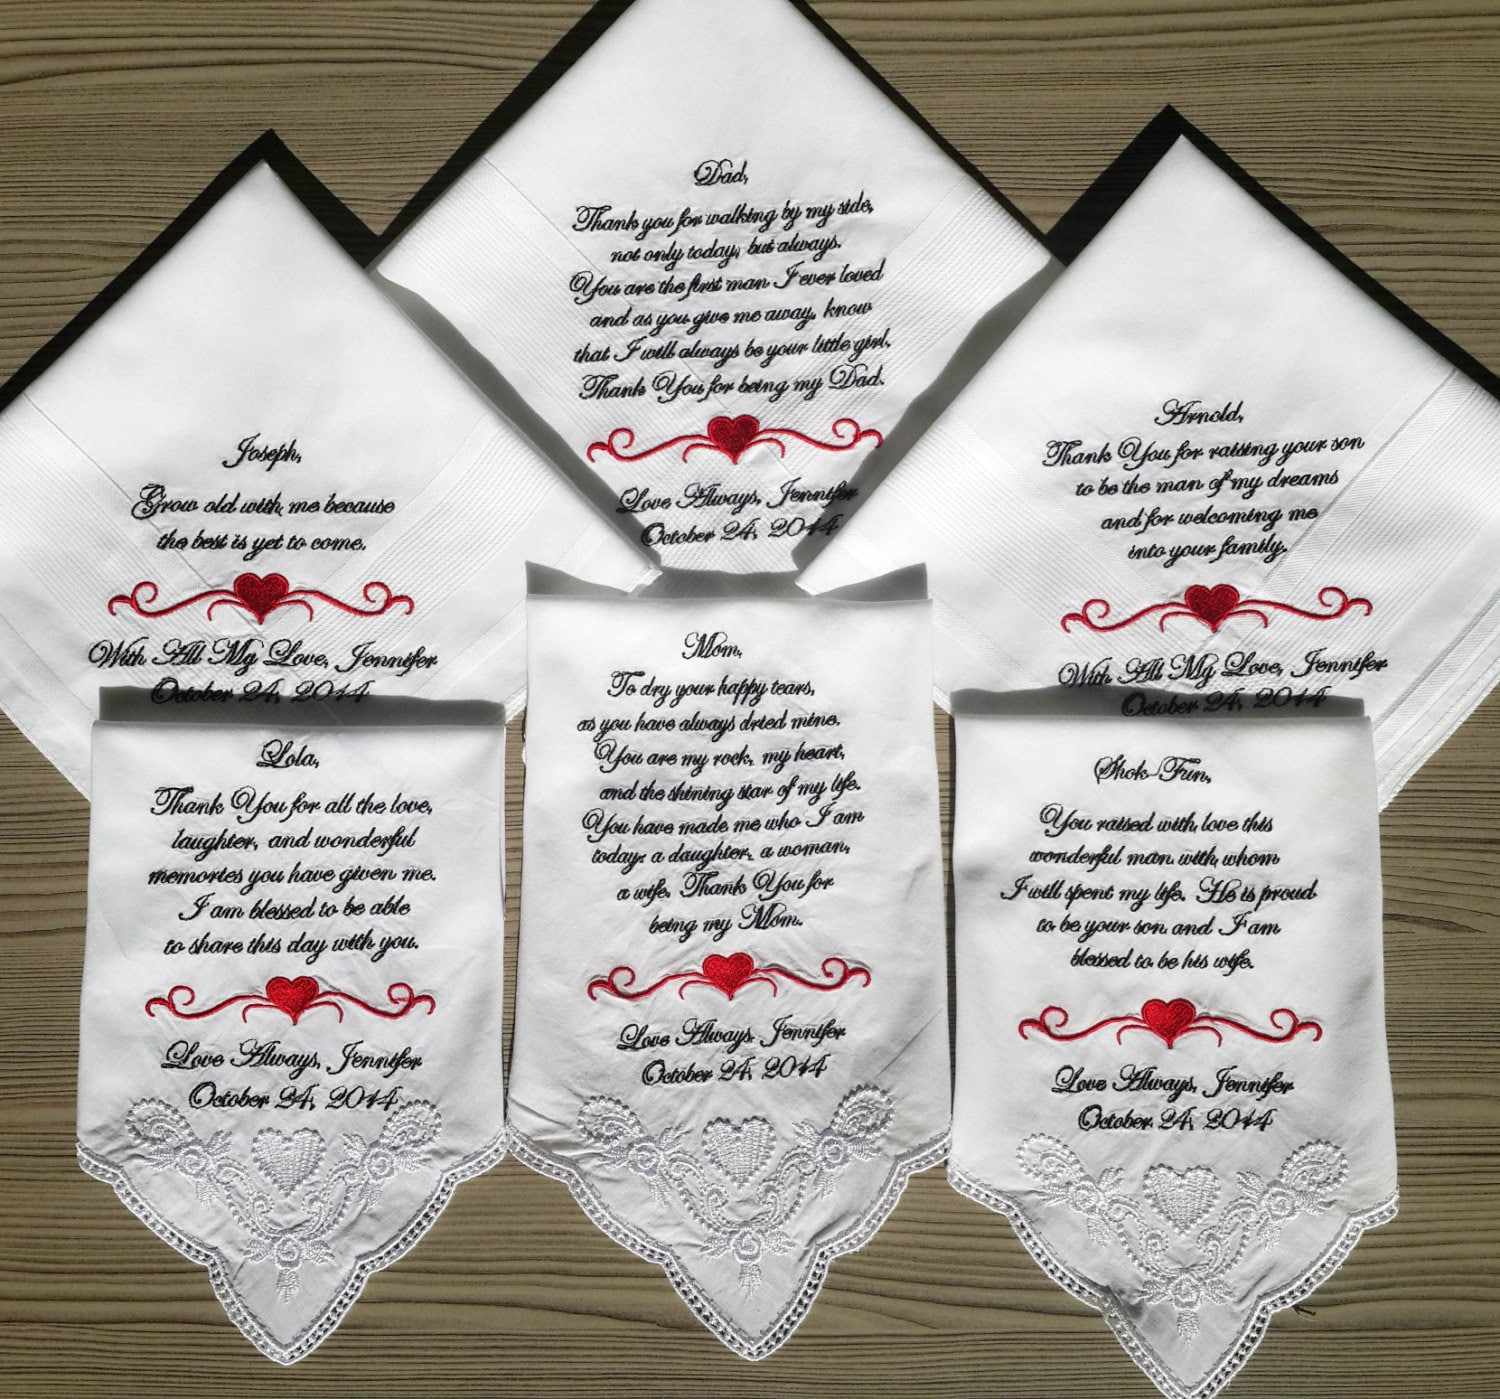 Personalized 6 Wedding Handkerchiefs For Parents Of Bride And